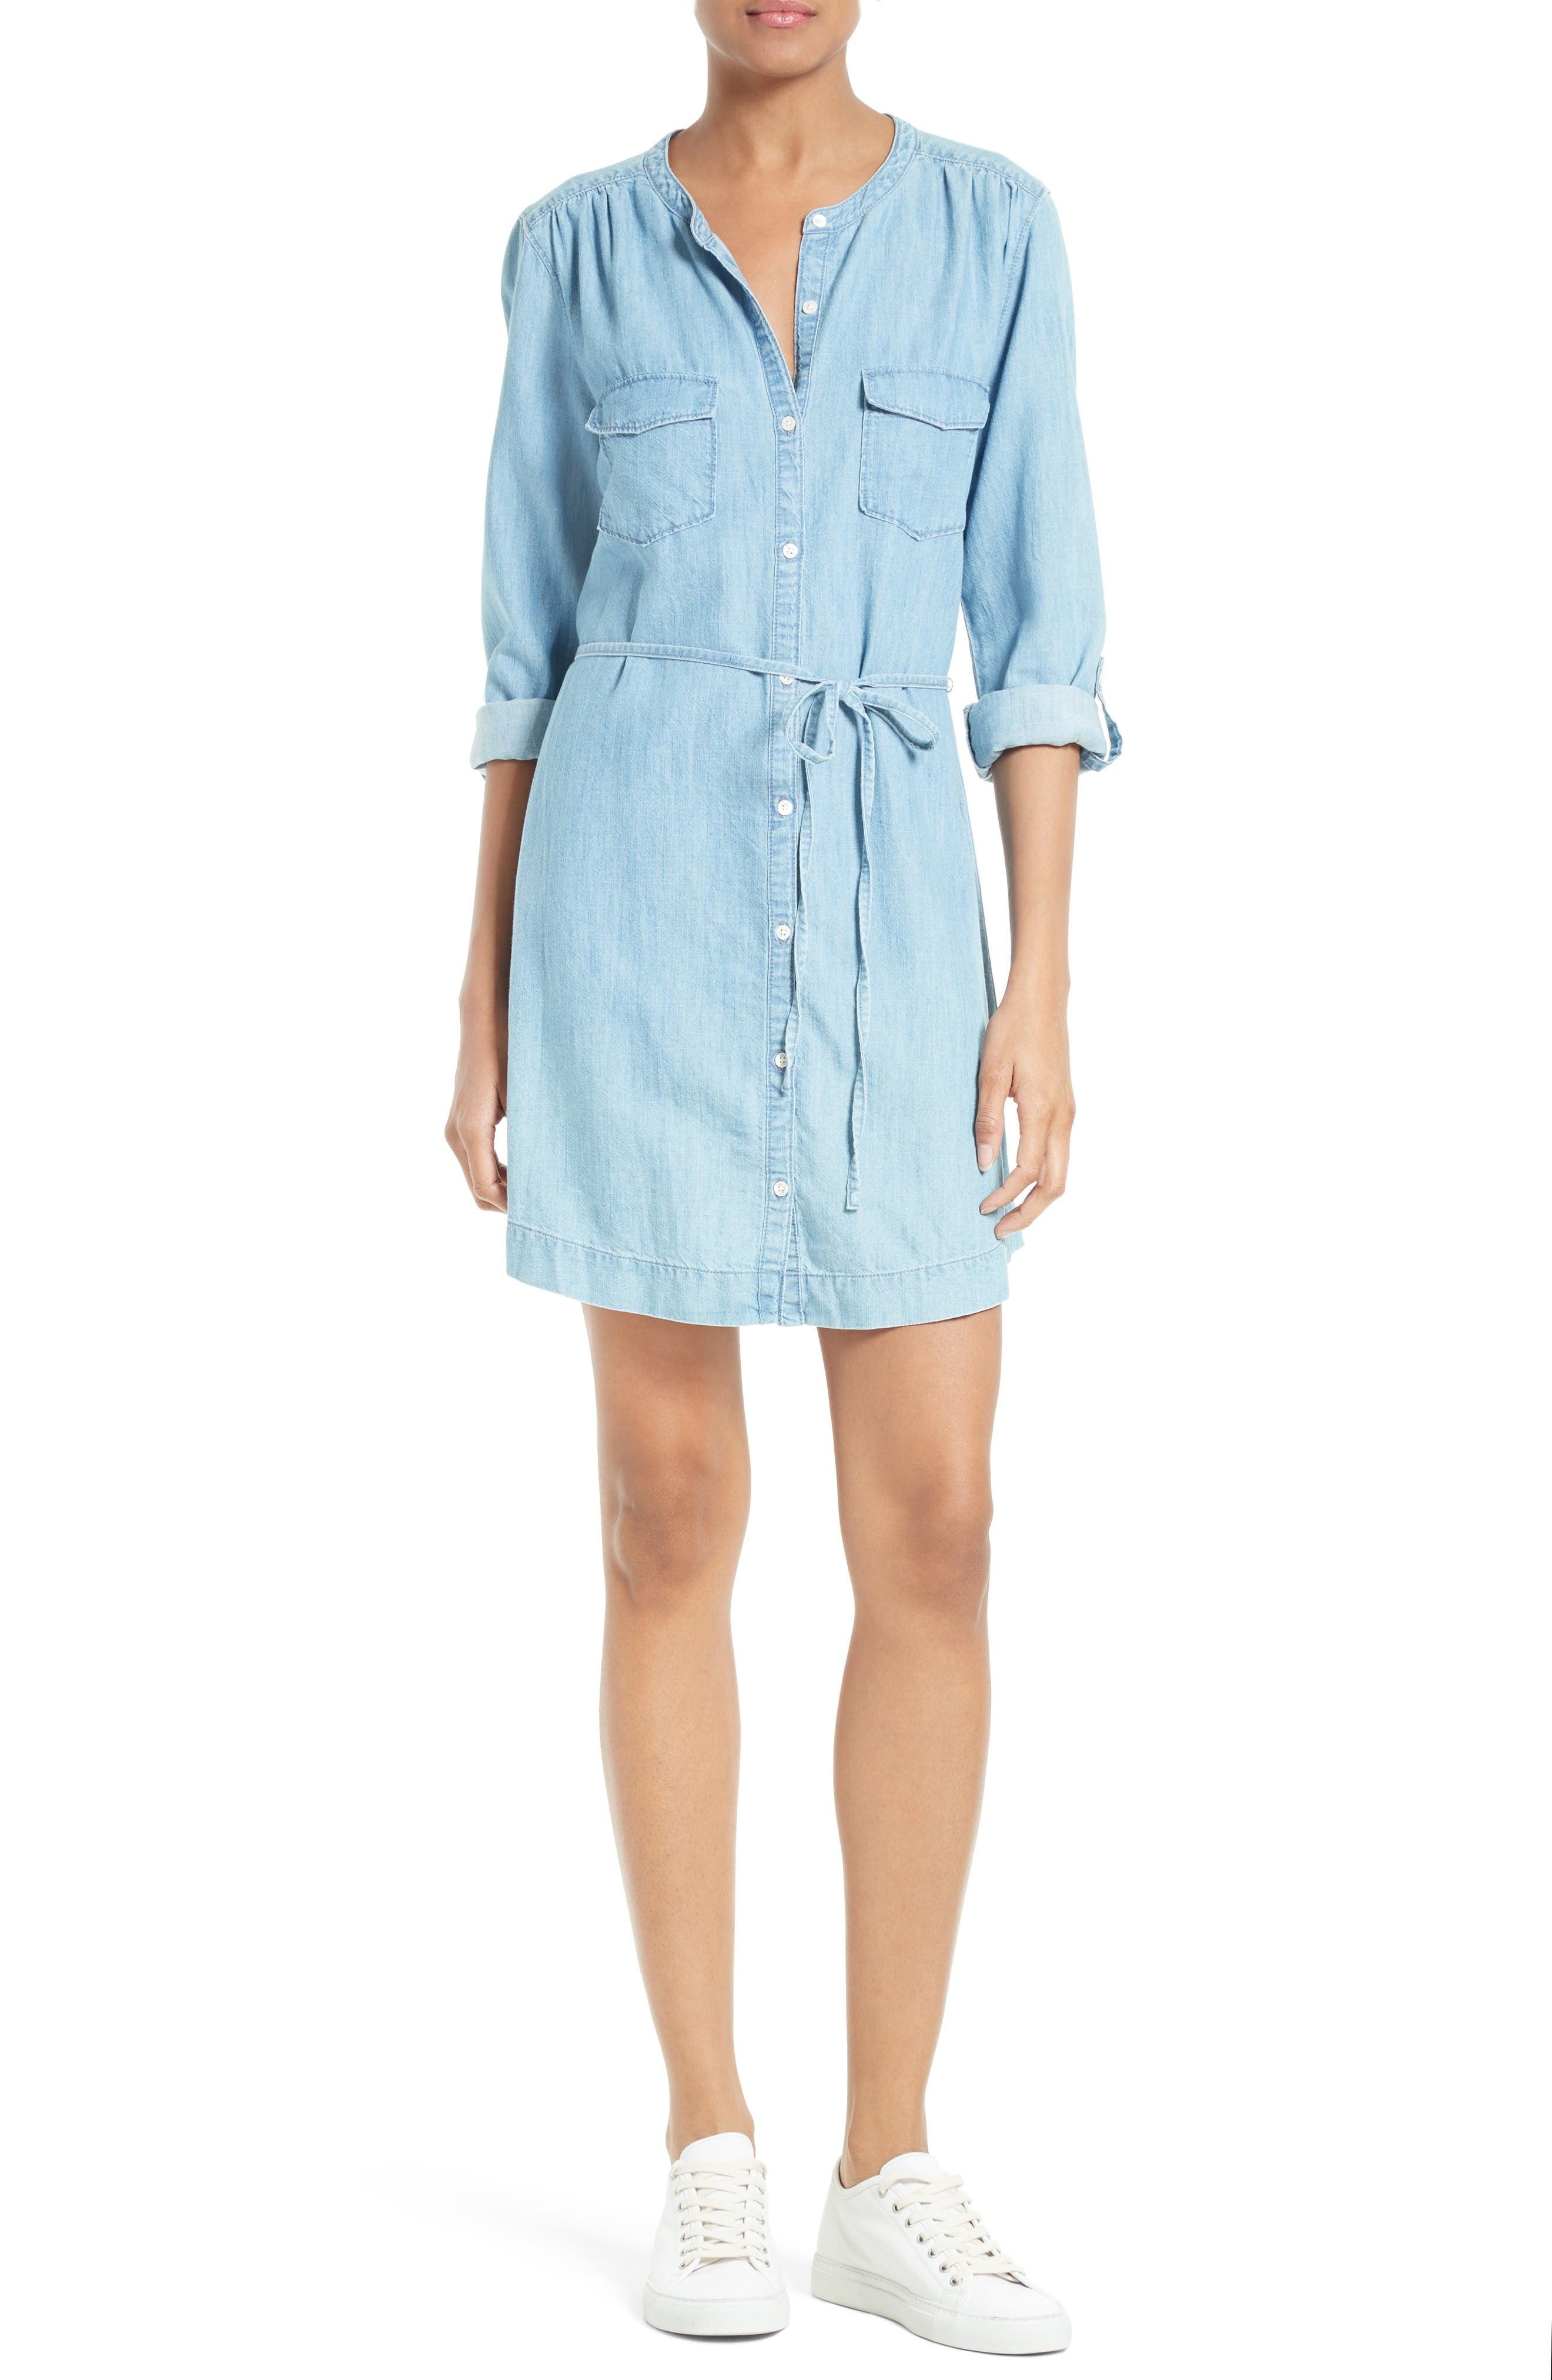 Alternate Image 1 Selected - Soft Joie Milli Chambray Shirtdress